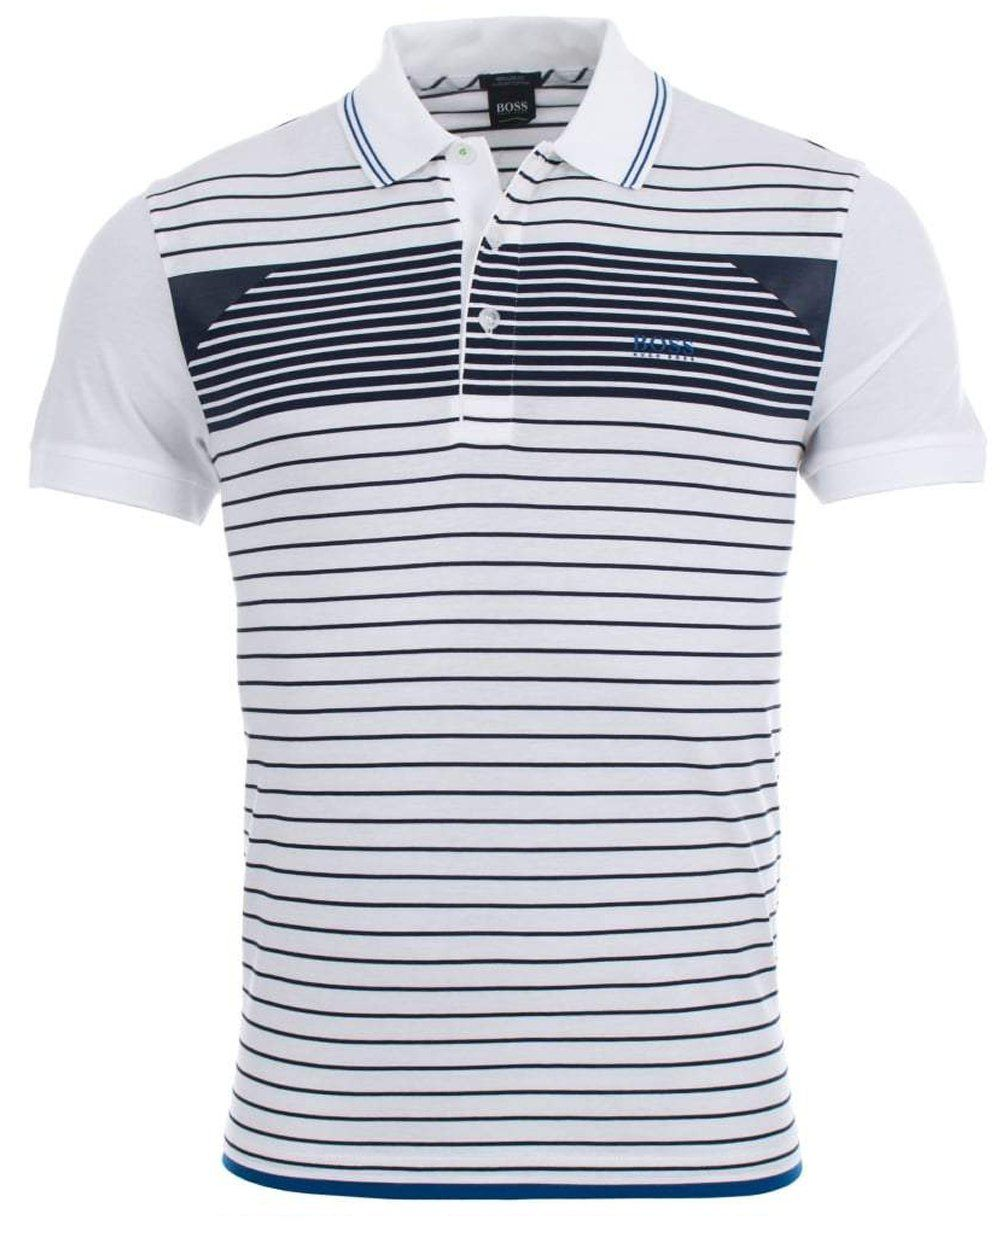 a037dcf18 BOSS Paddy 5 Striped Polo Shirt in White – Edwards Menswear